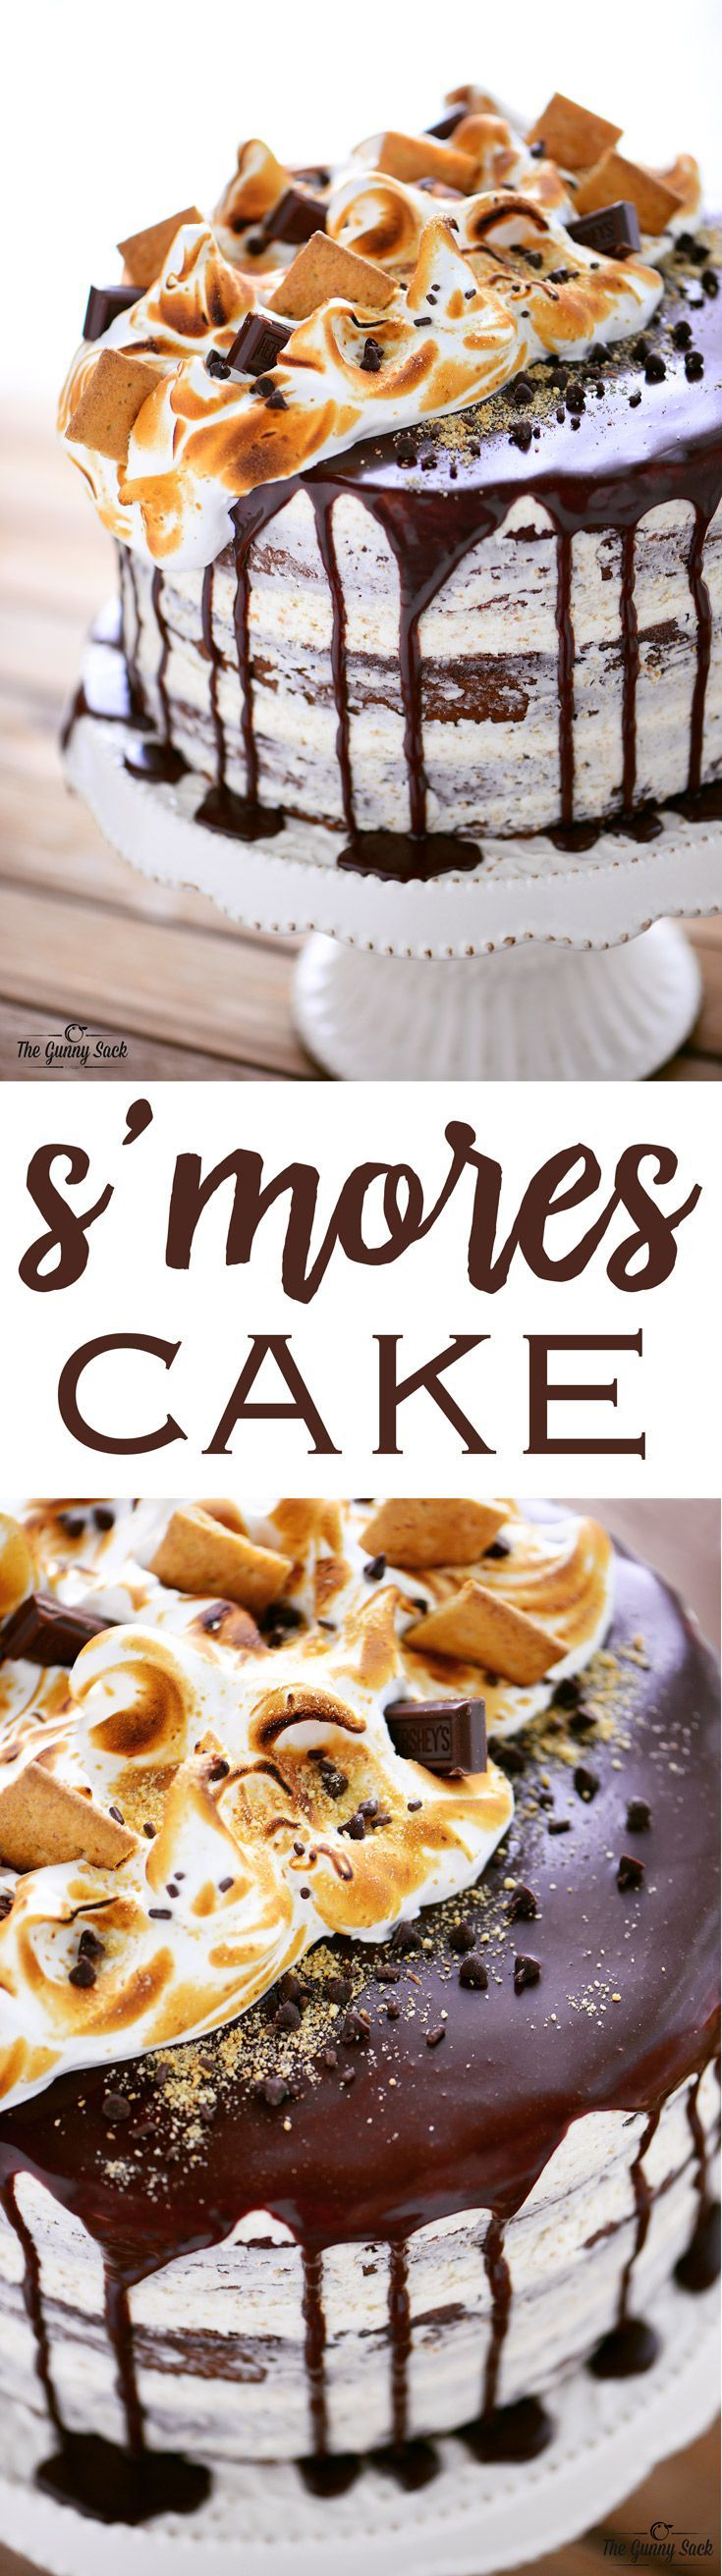 S'mores aren't just for campfires! This S'mores Cake will be the start of the party!